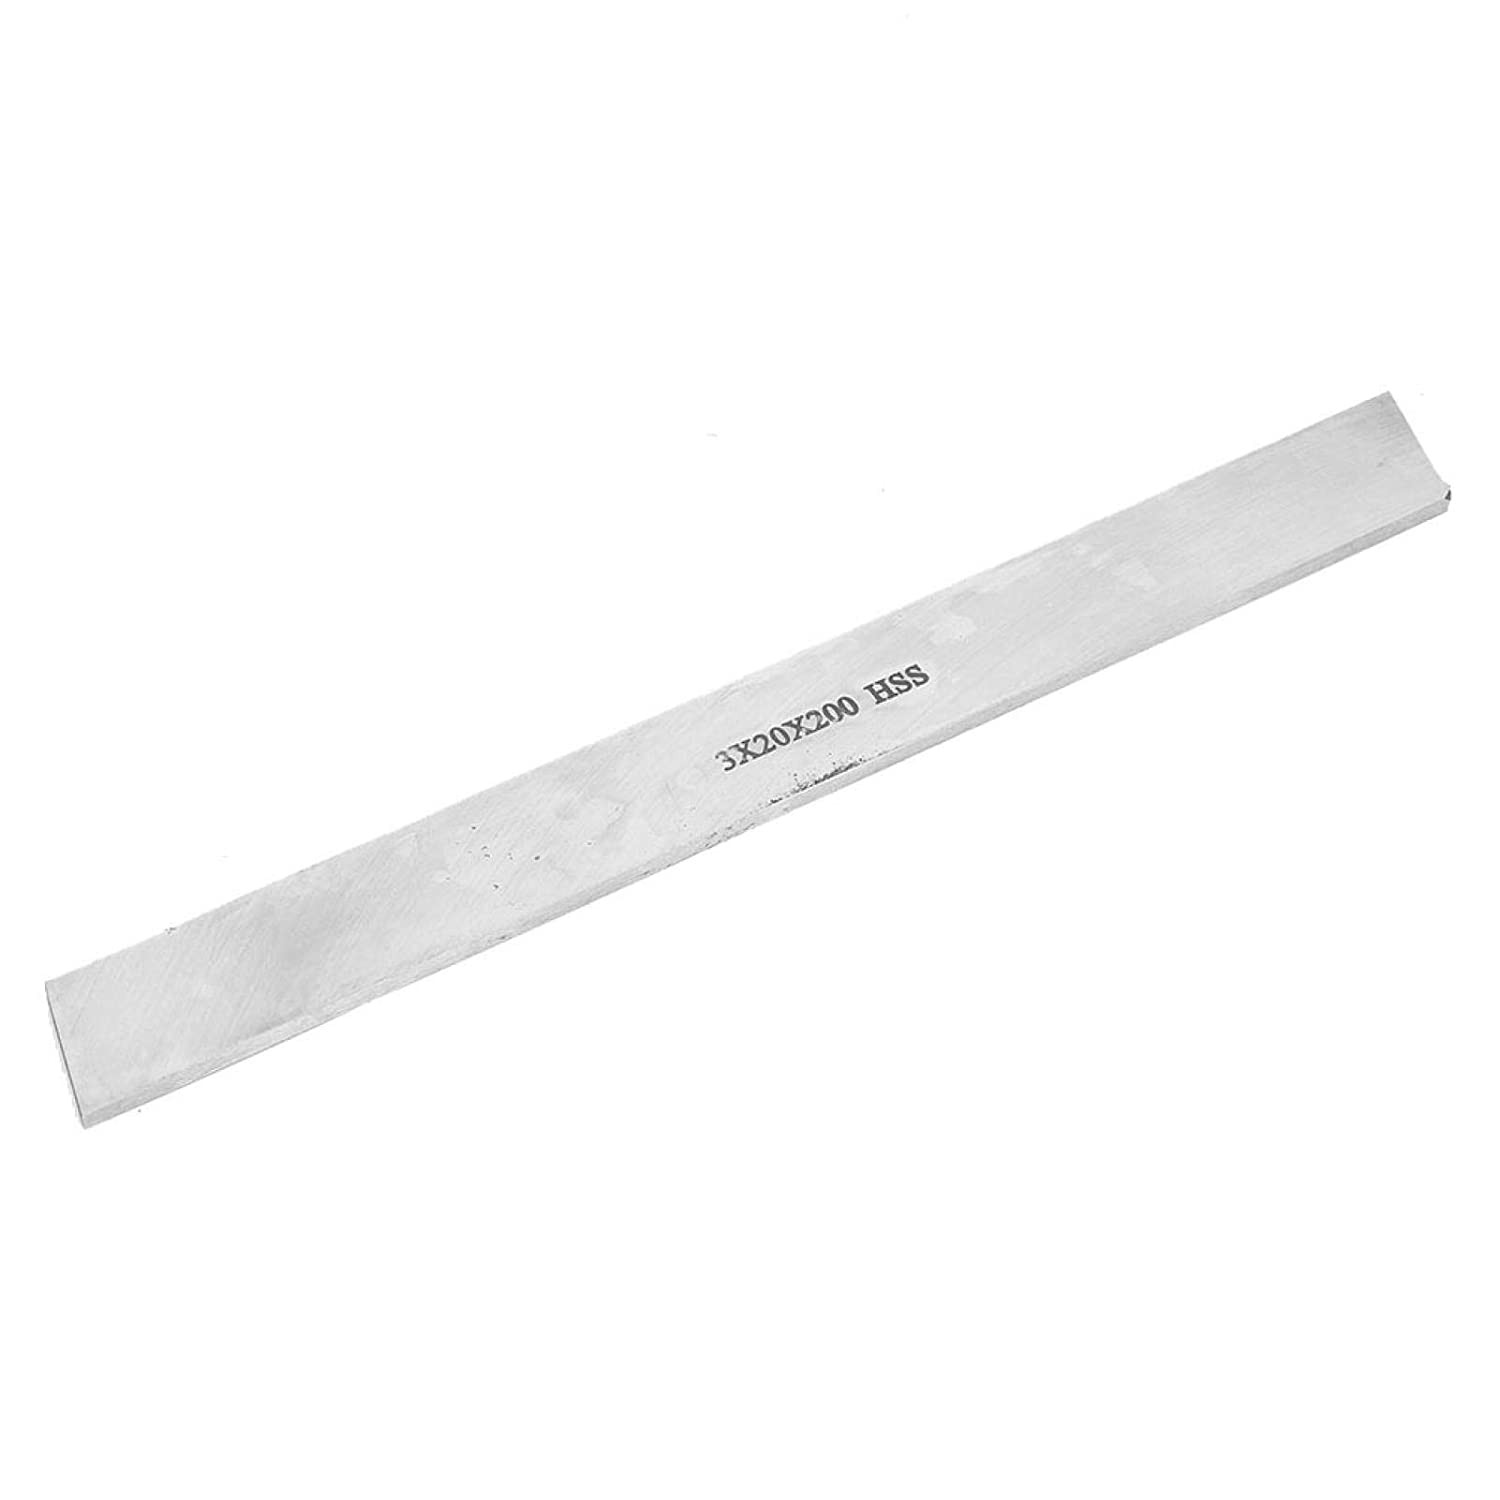 HSS Steel Bar Cheap mail order specialty store Lathe Strip White Wholesale Speed C High